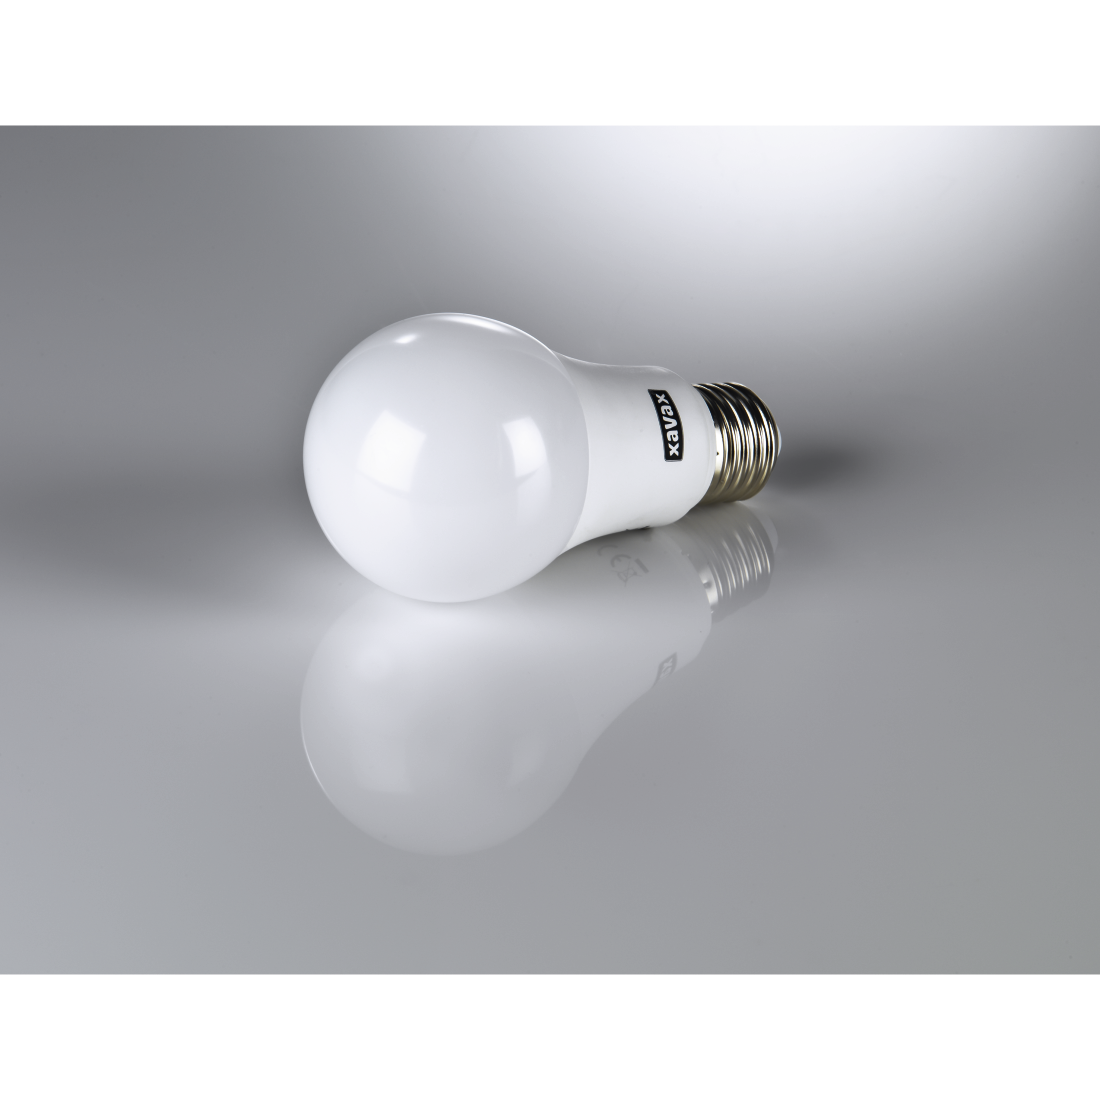 abx3 High-Res Image 3 - Xavax, Ampoule LED High Line, 9,2W, forme classique, E27, blanc chaud,RA90